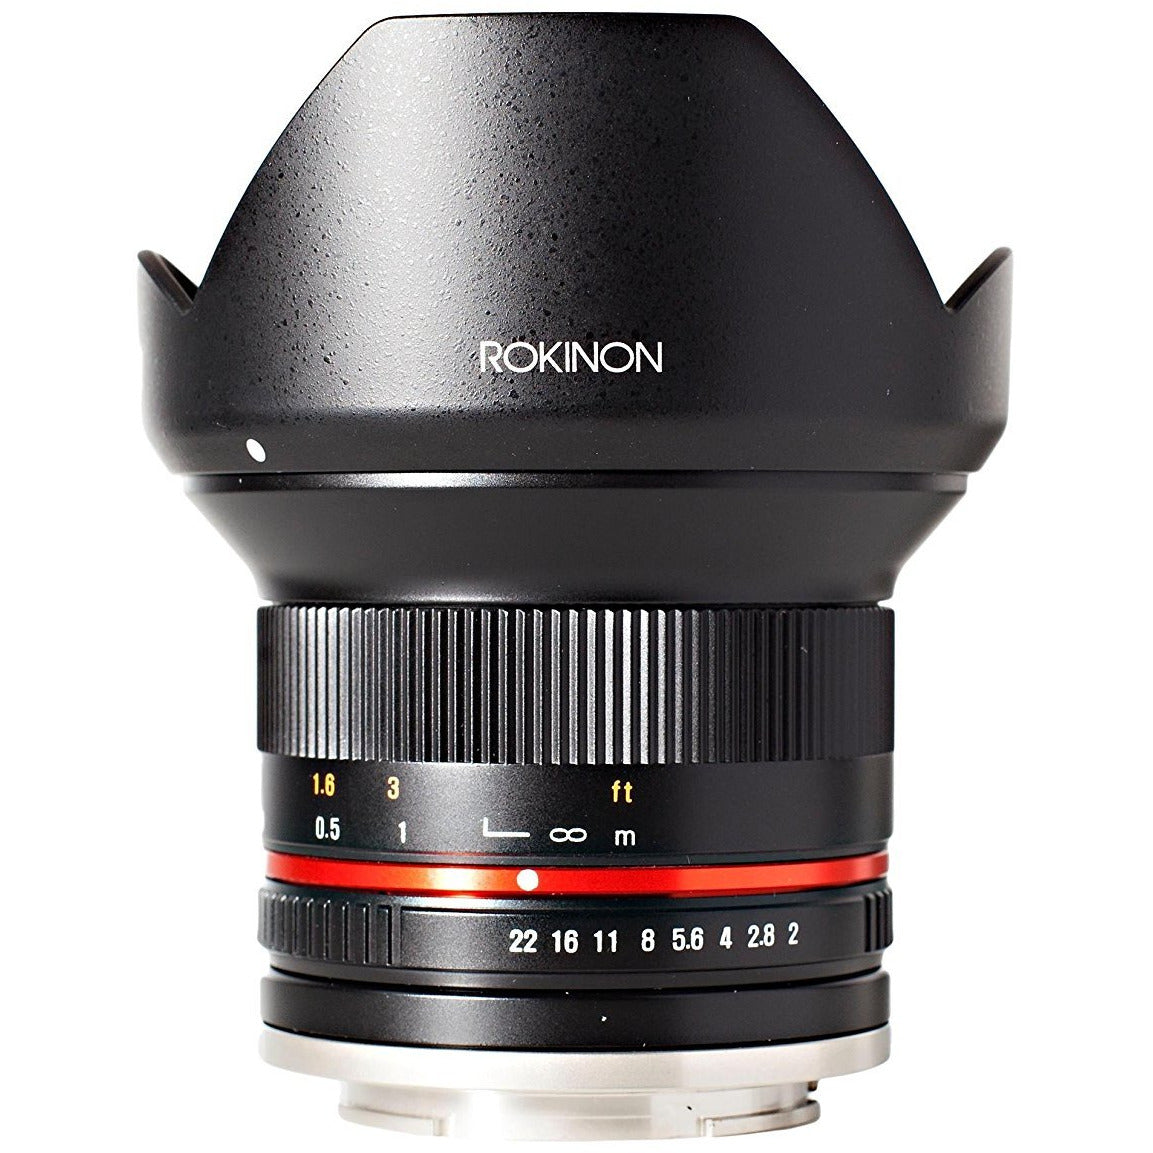 Samyung 12mm F2.0 NCS CS Ultra Wide Angle Lens Sony E-Mount